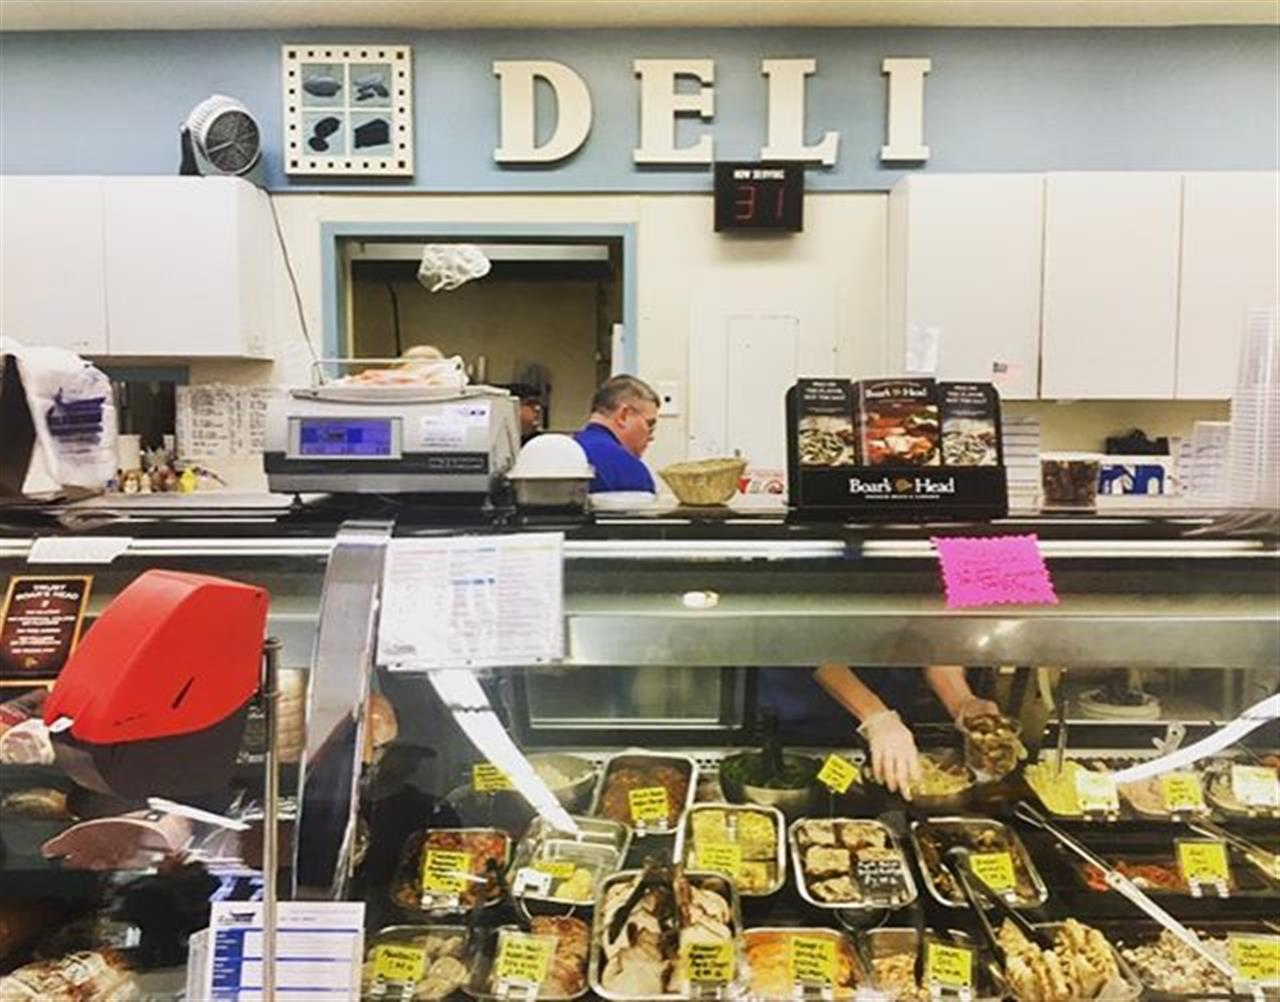 This local grocery store is the best for fresh, organic and healthy food that taste just divine. #shoplocal #eatlocal #hinsdaleil #hinsdale #chicagosuburbs #leadingrelocal #realestate #deli #bairdandwarner #realestate